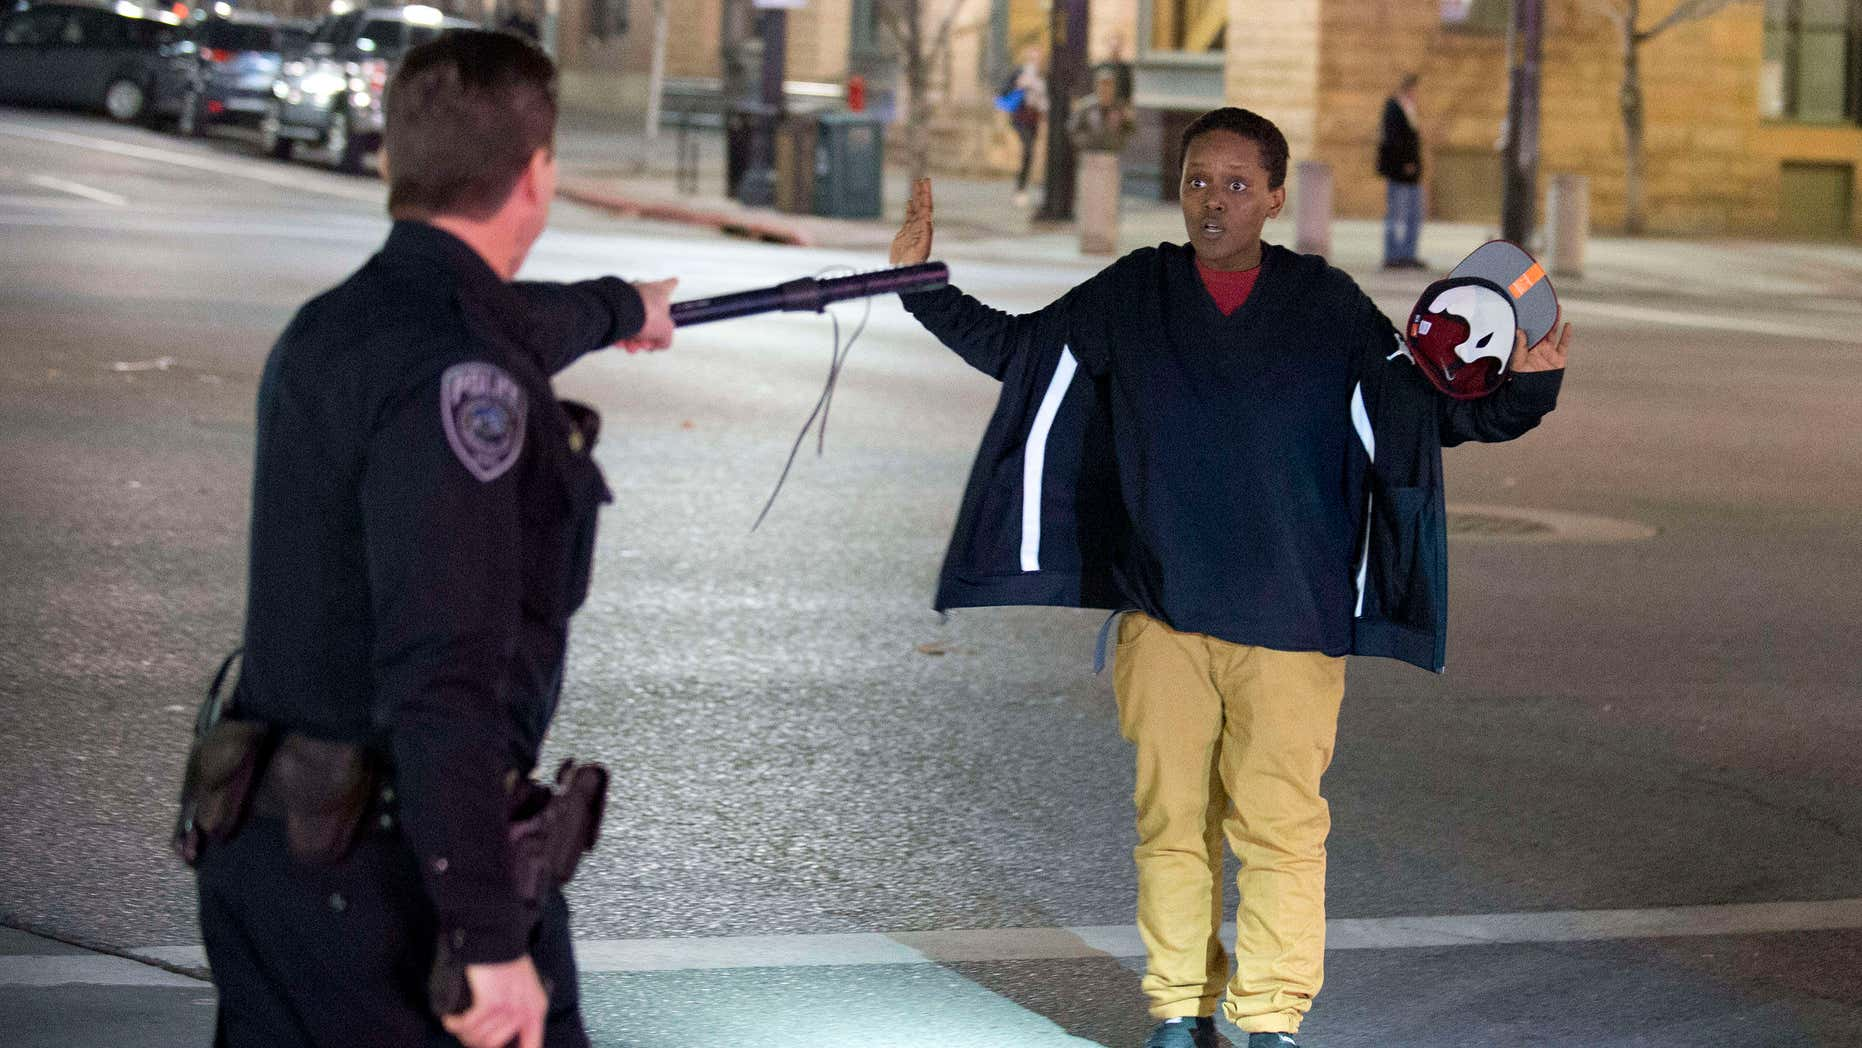 Feb. 27, 2016: Police stop a boy as he walks away from a crowd that formed after an officer-involved shooting at 200 South Rio Grande Street in Salt Lake City.